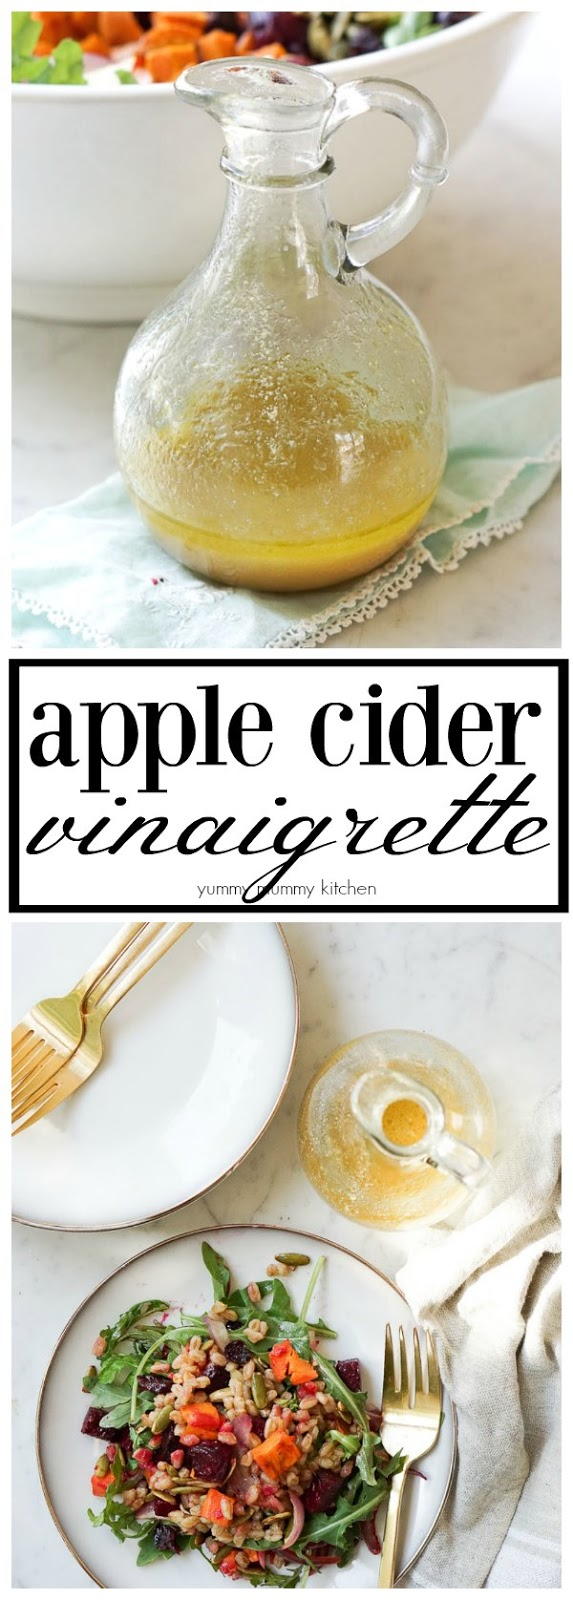 The perfect apple cider vinaigrette salad dressing recipe.